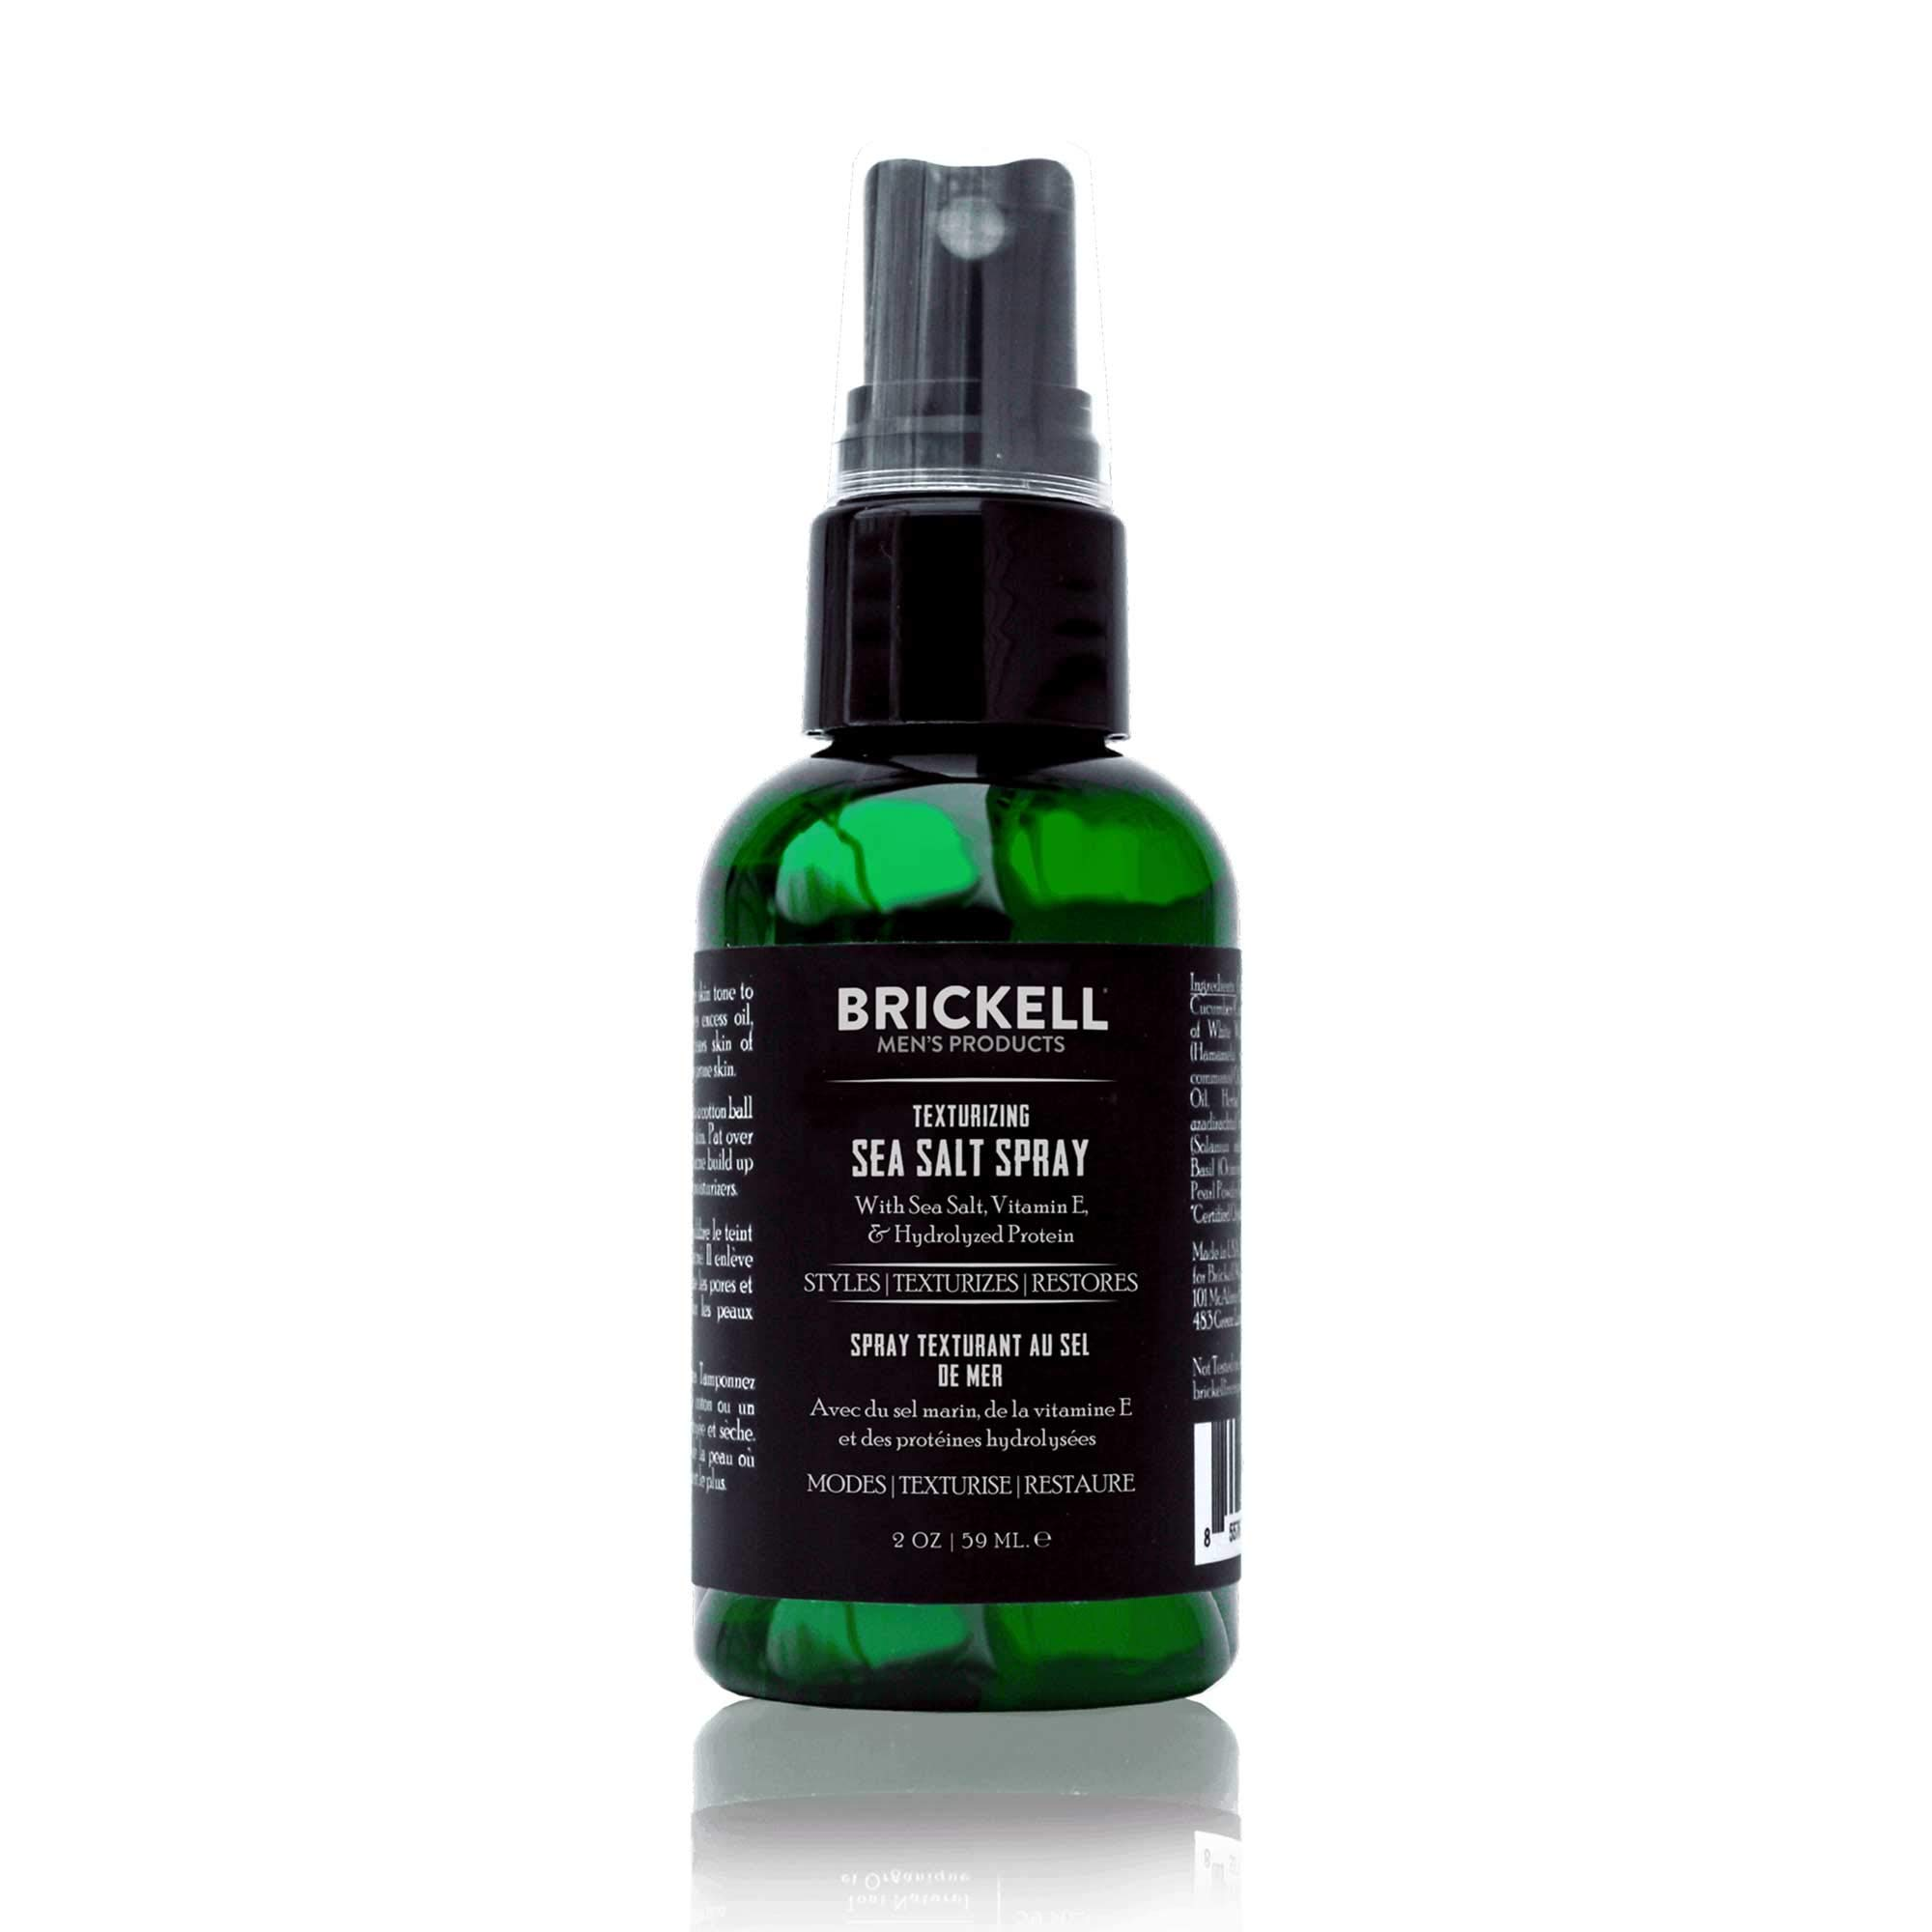 Brickell Men's Texturizing Sea Salt Spray for Men, Natural & Organic, Alcohol-Free, Lifts and Texturizes Hair for a Beach or Surfer Hair Style (2 Ounce)